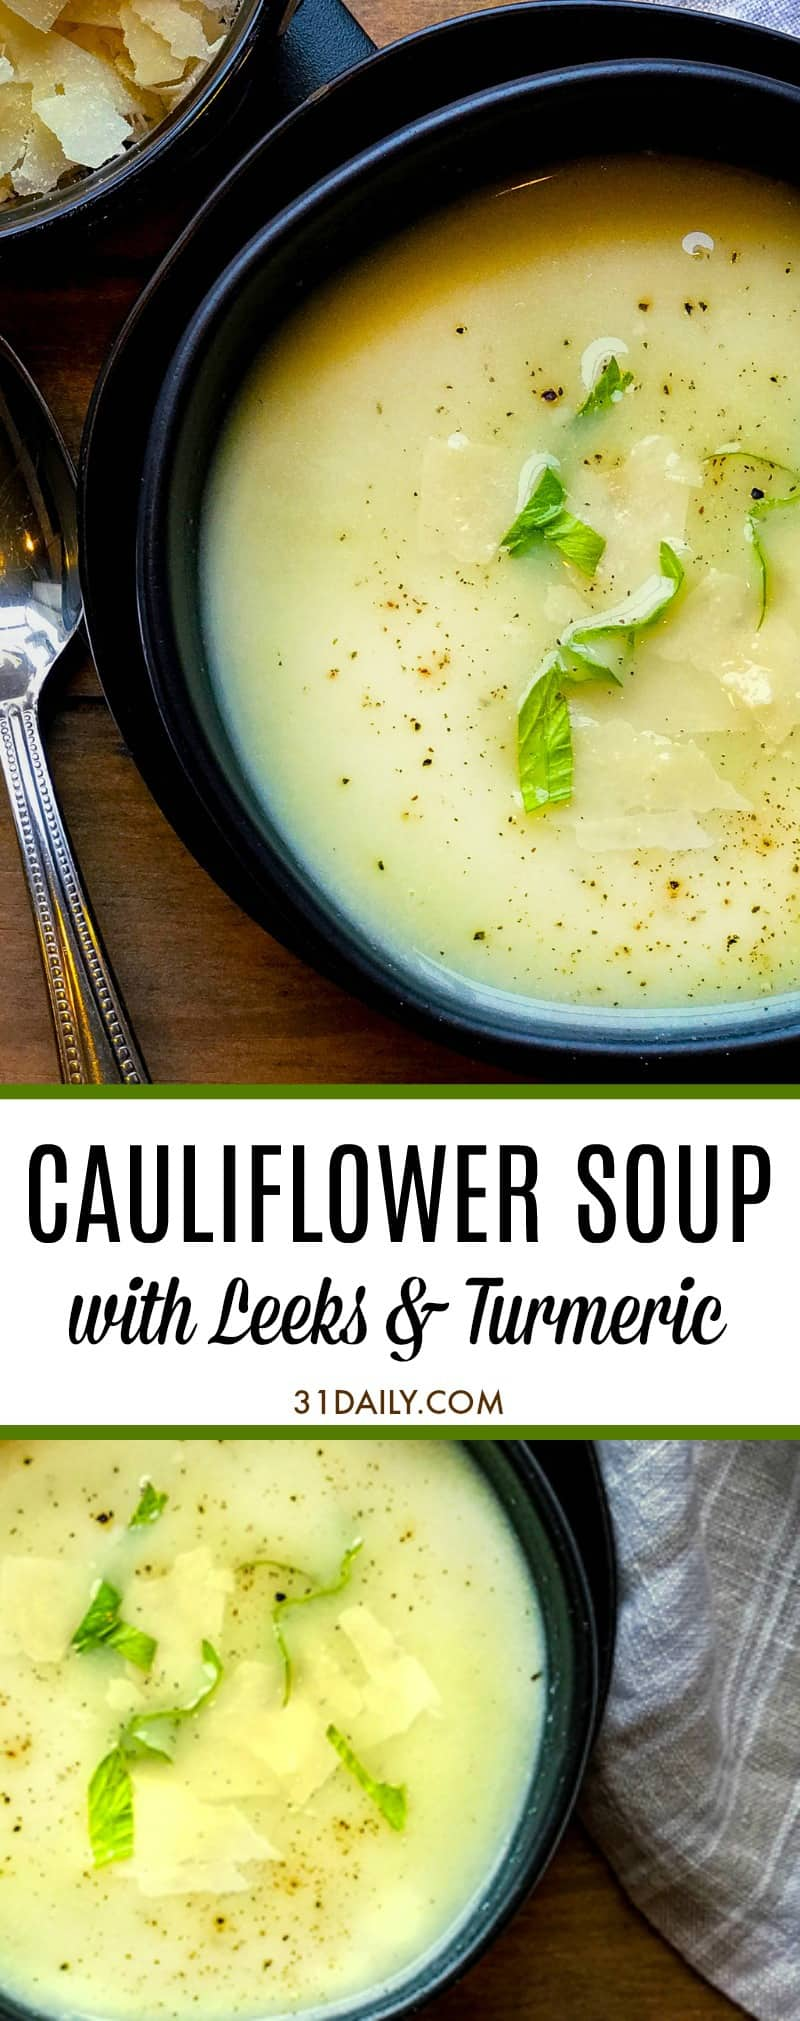 Creamy Cauliflower Soup with Leeks and Turmeric | 31Daily.com